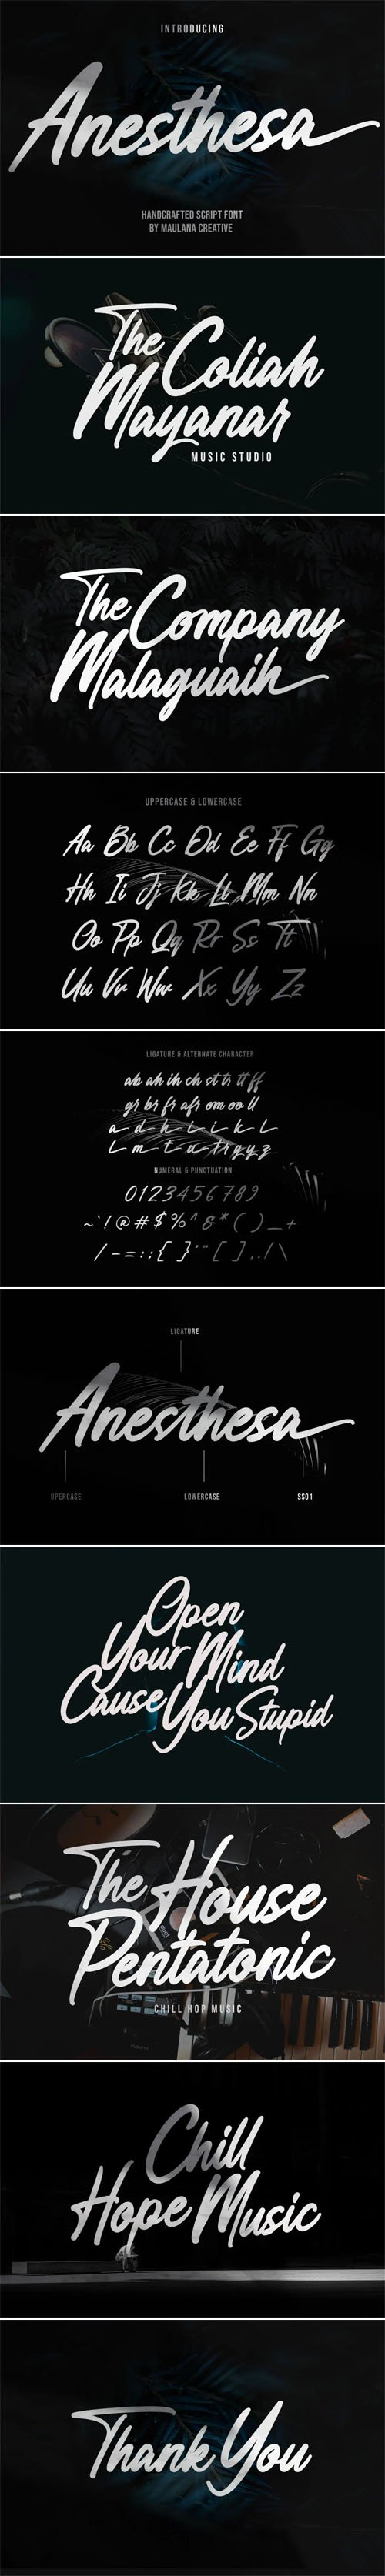 Anesthesa Script - Casual Handcrafted Font